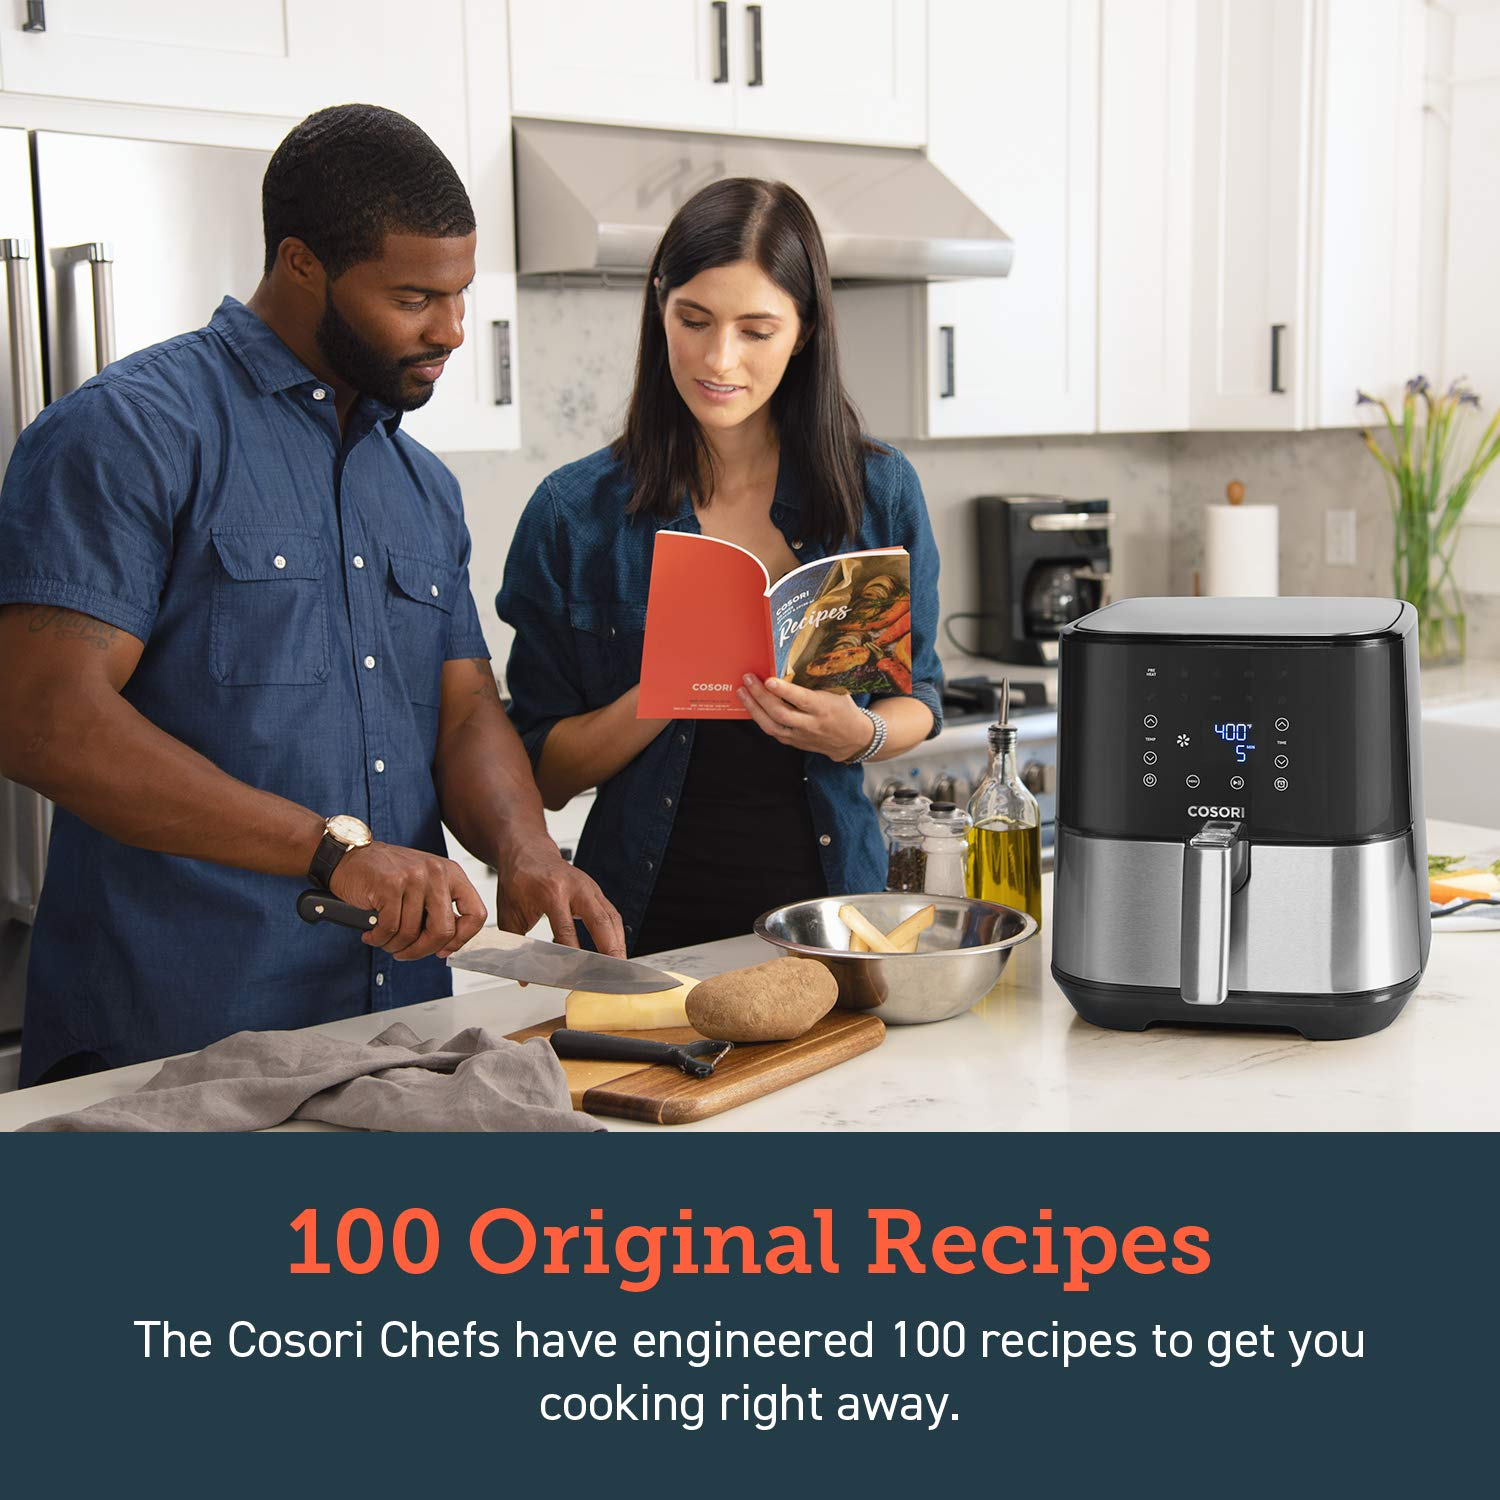 COSORI Stainless Steel Air Fryer (100 Recipes, Rack & 5 Skewers), 5.8Qt Large Air Fryers XL Oven Oilless Cooker, Preheat/Alarm Reminder, 9 Presets, Nonstick Basket, 2-Year Warranty, ETL/UL Listed by COSORI (Image #4)